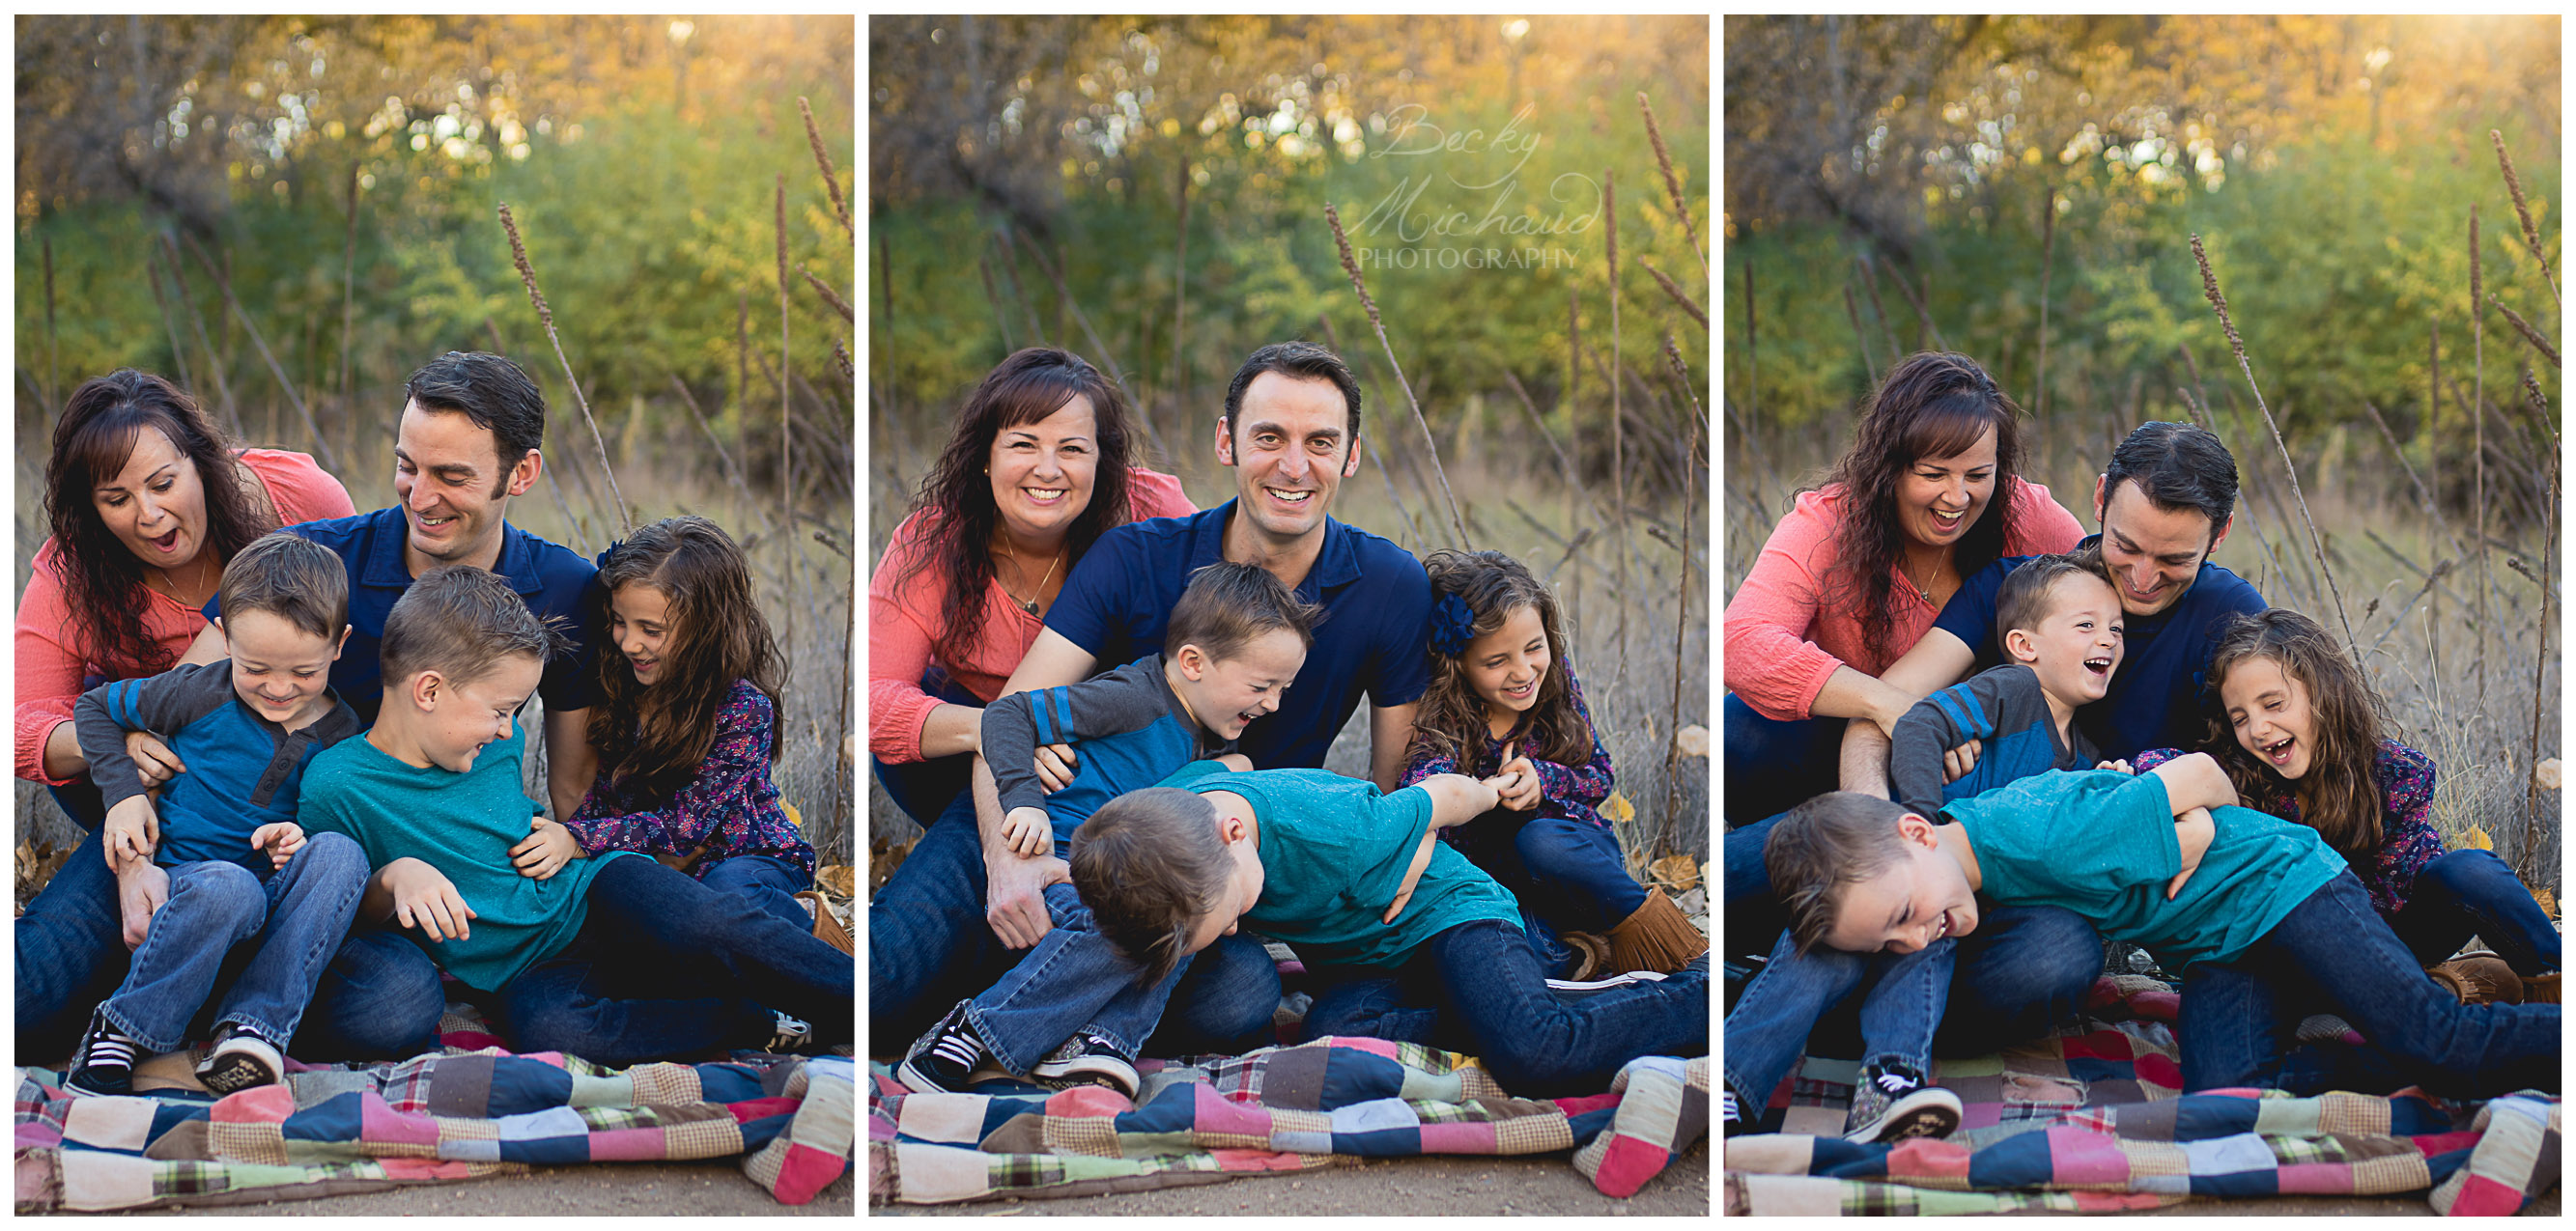 Collage of three photos showing a family tickling each other